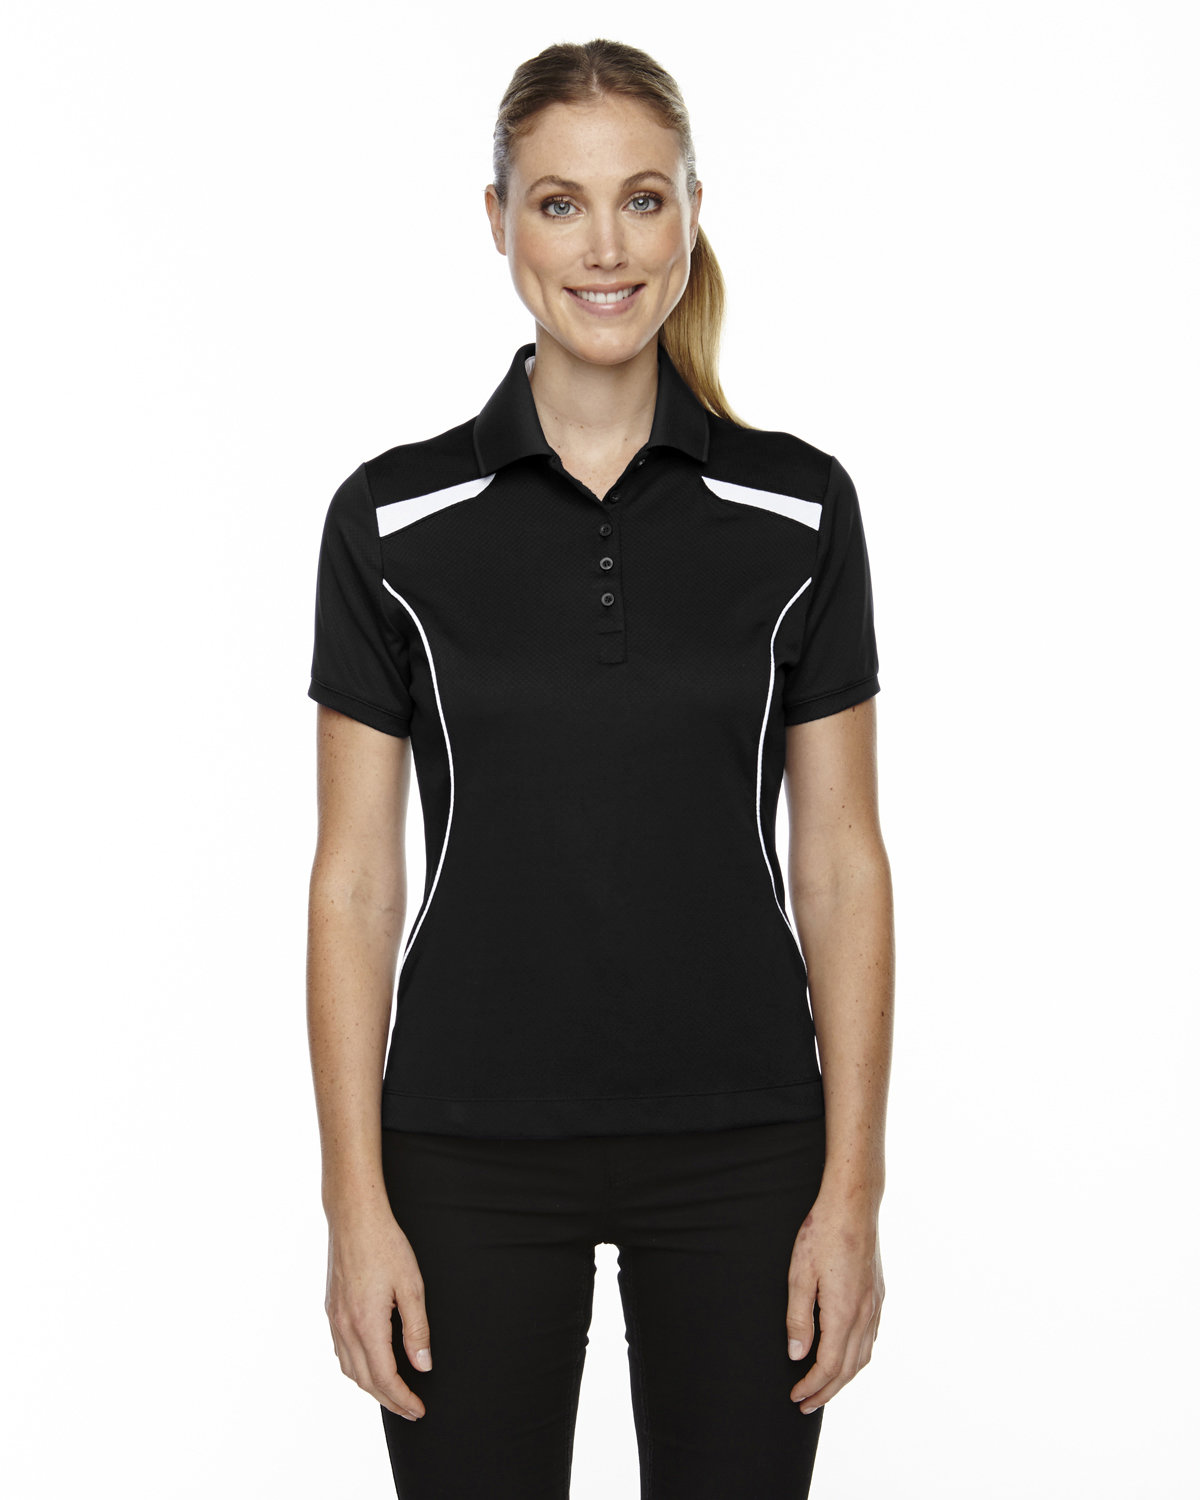 Extreme Ladies' Eperformance™' Tempo Recycled Polyester Performance Textured Polo BLACK